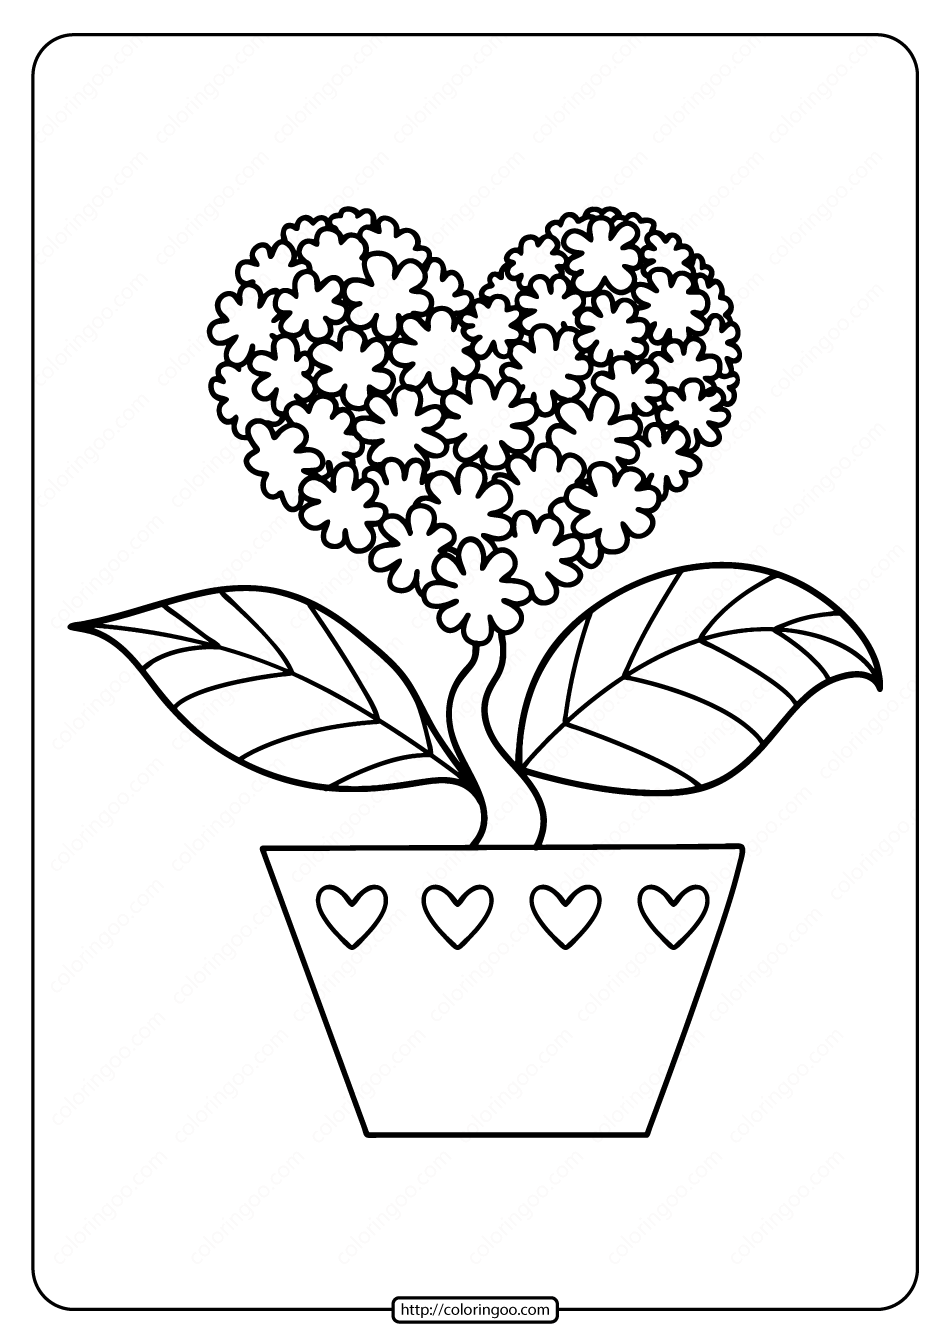 Free Printable Heart Shaped Flower Coloring Page Valentine Coloring Pages Heart Coloring Pages Valentines Day Coloring Page